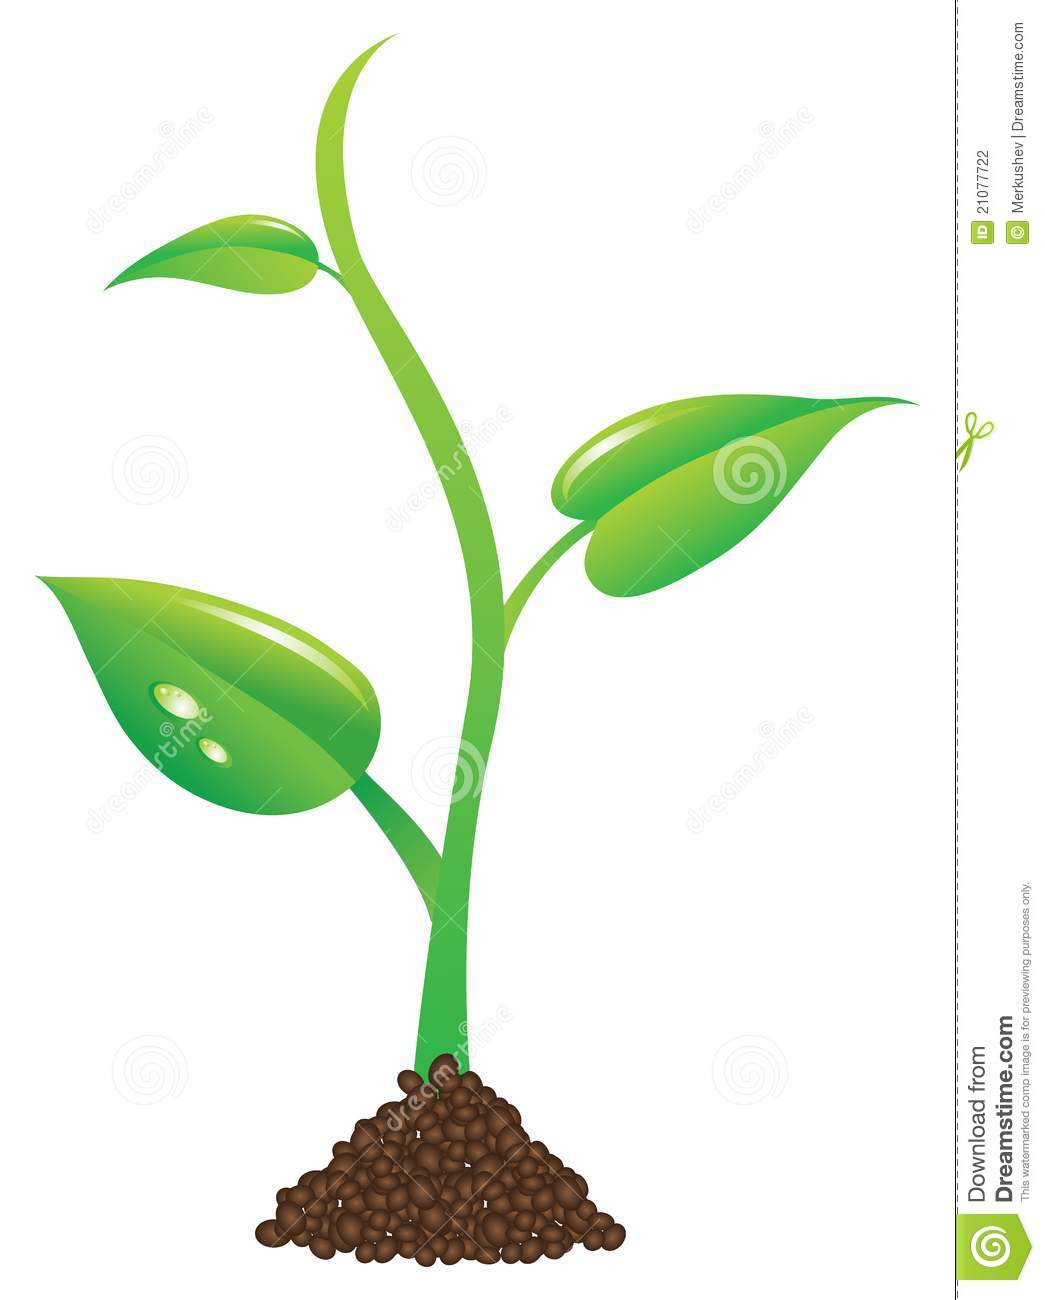 Free plant pictures clip art.